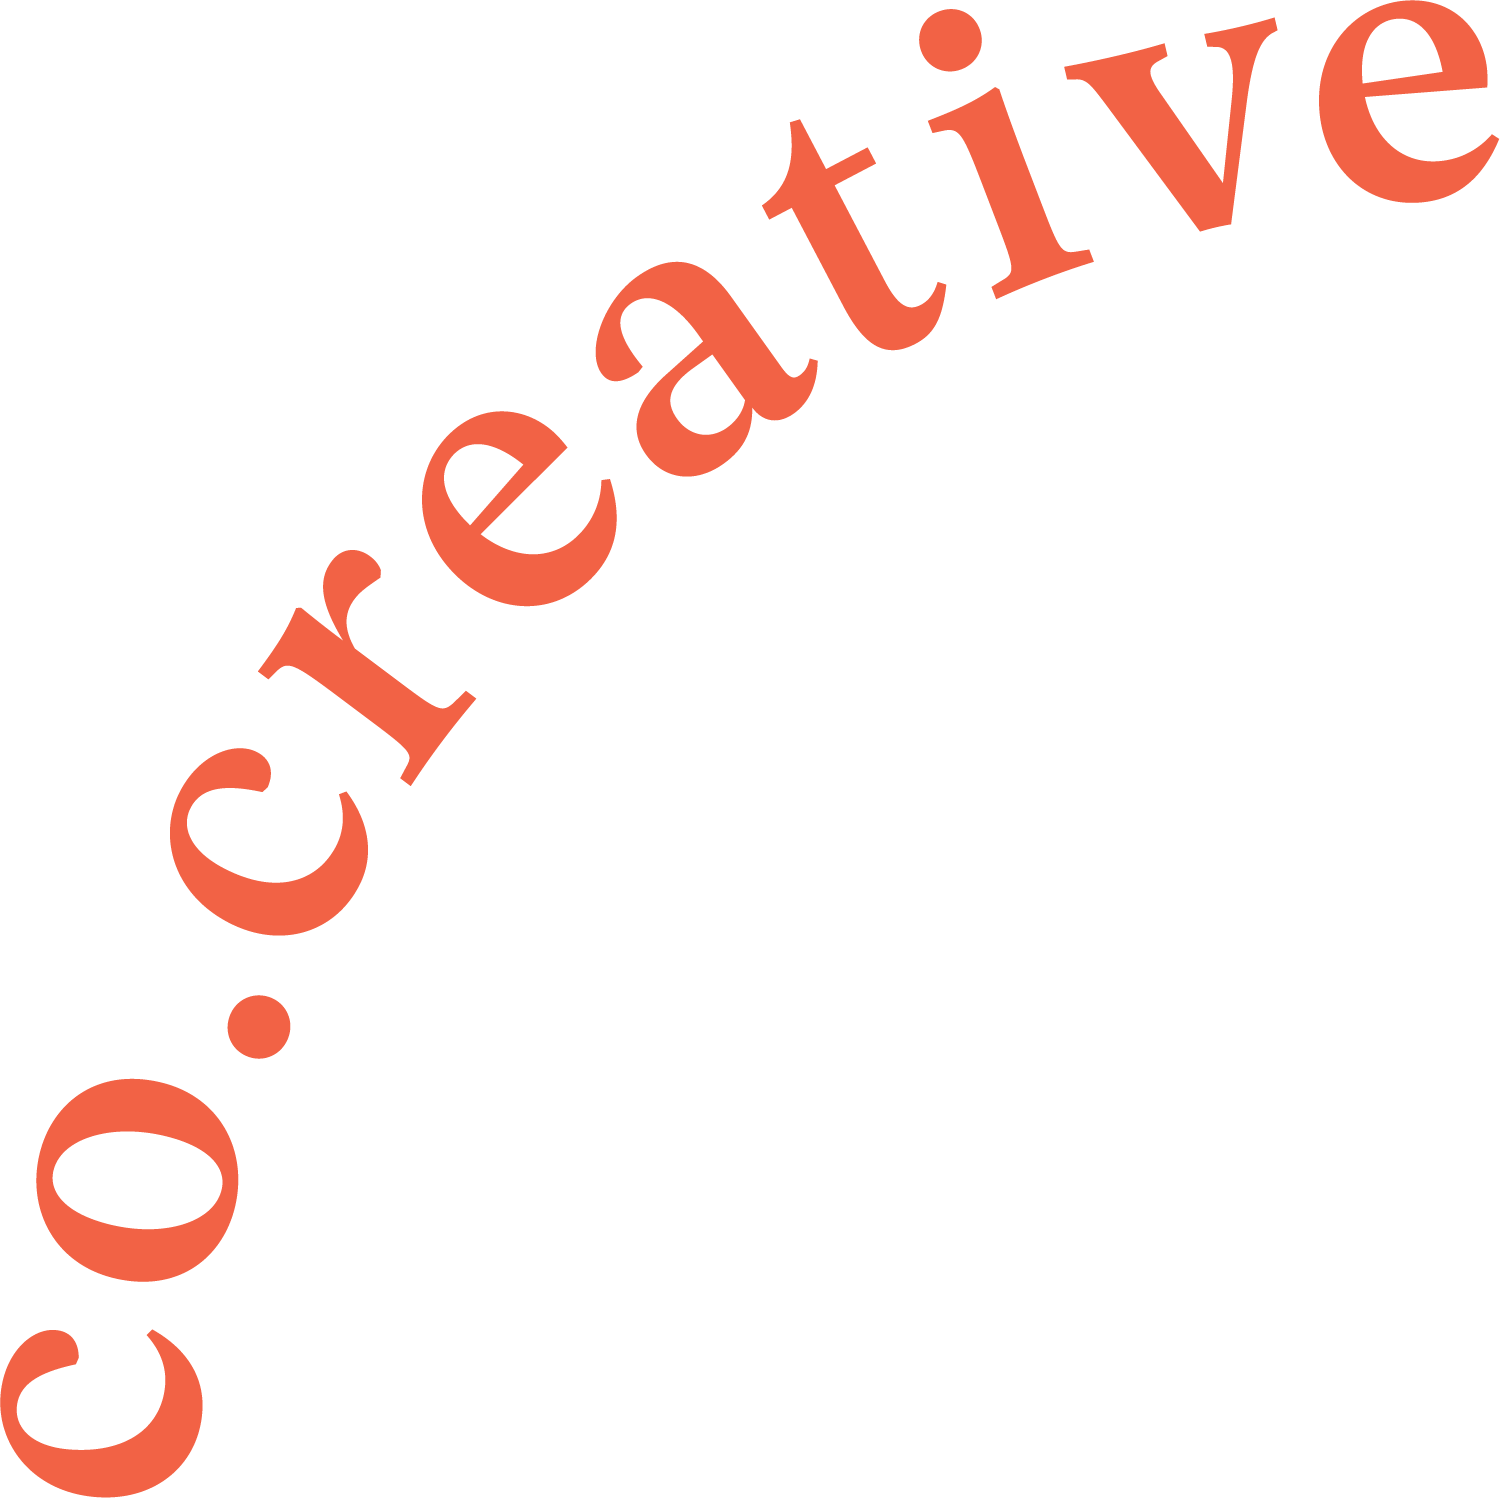 Curved Co.Creative logo